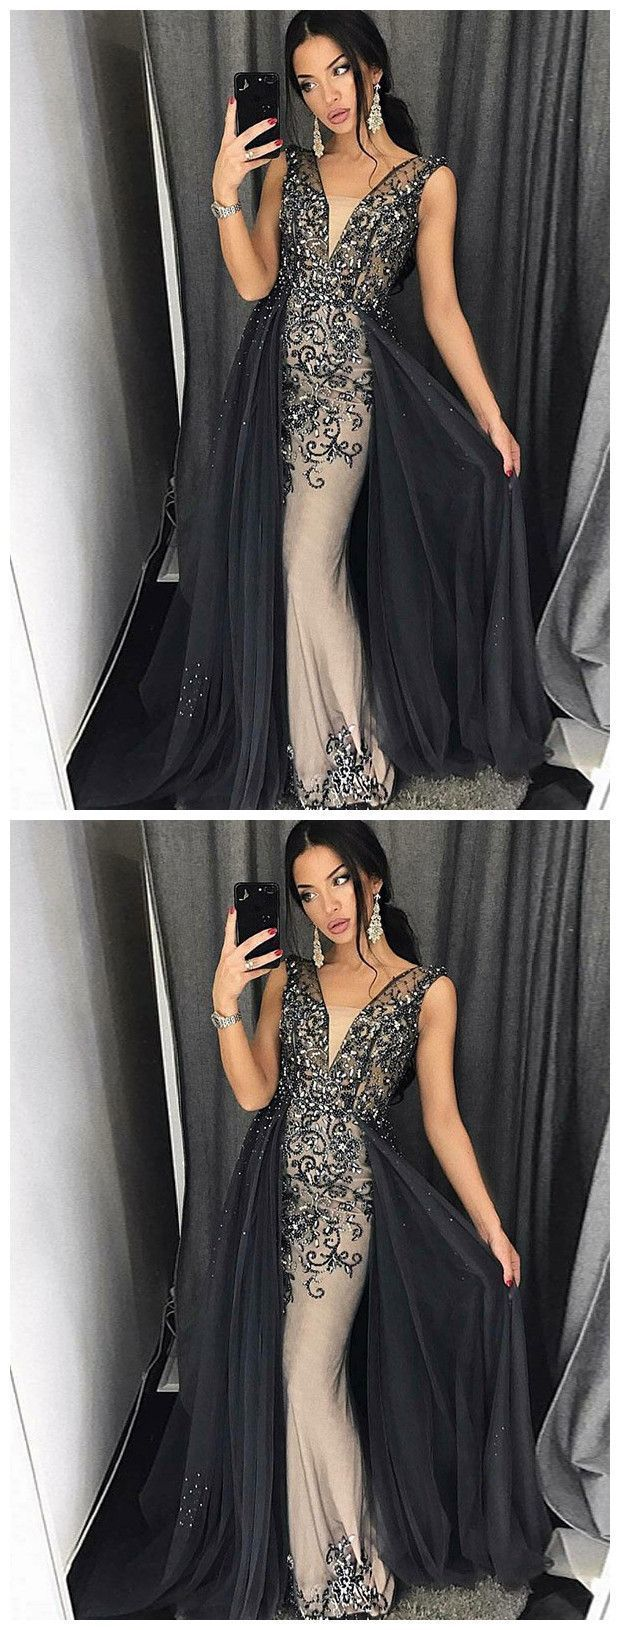 TRUMPET/MERMAID STRAPS BLACK PROM DRESS SPARKLY PROM DRESSES LONG EVENING DRESS